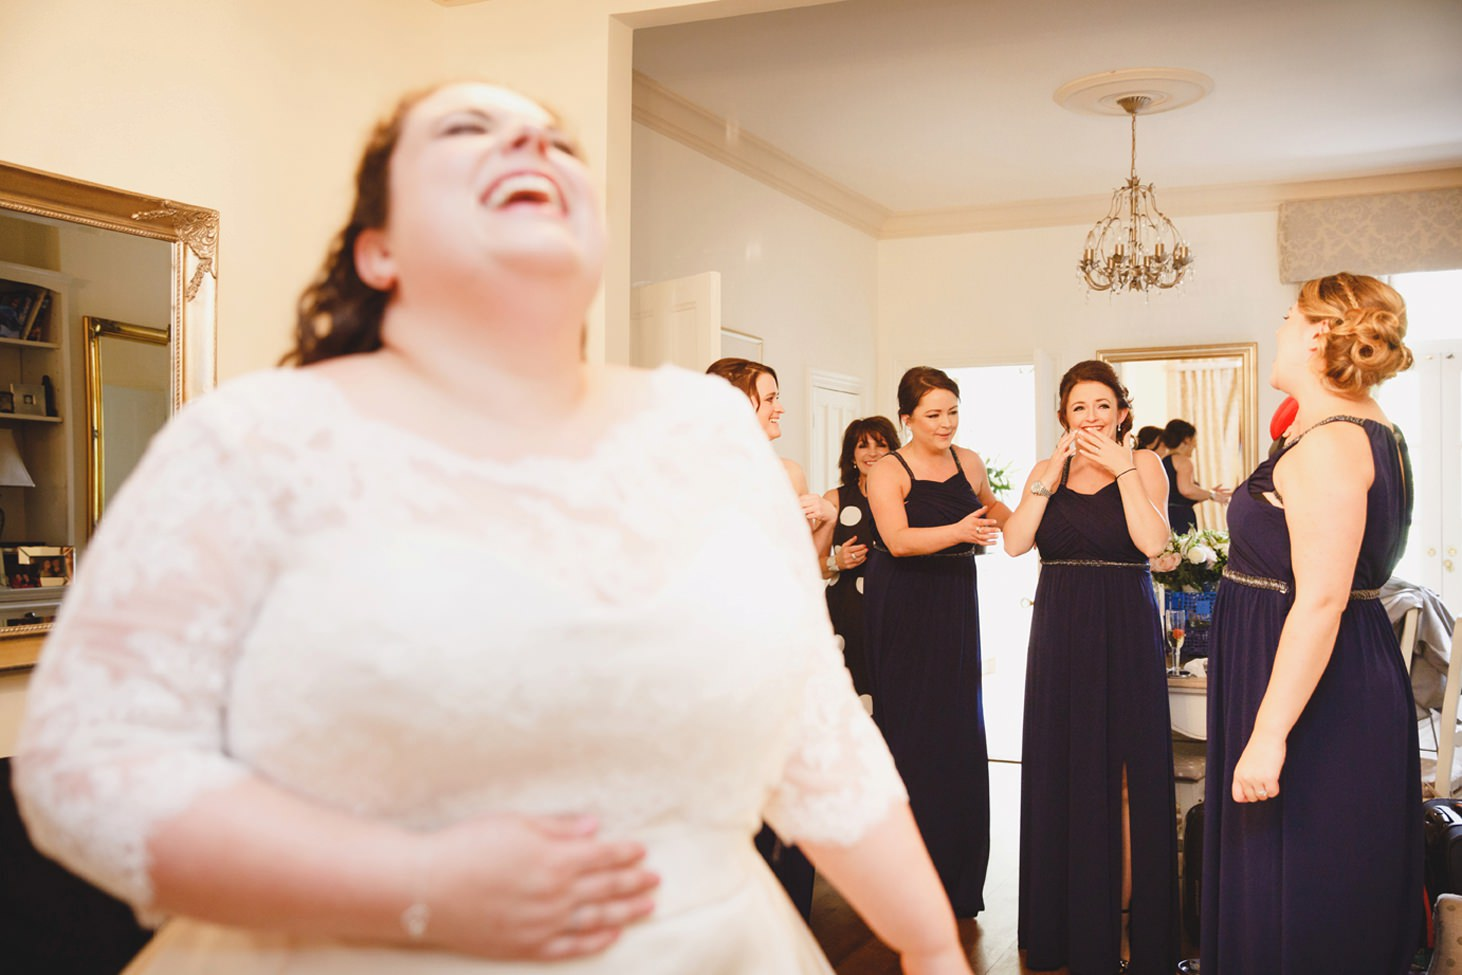 Coombe Abbey wedding photography Sarah Ann Wright 019